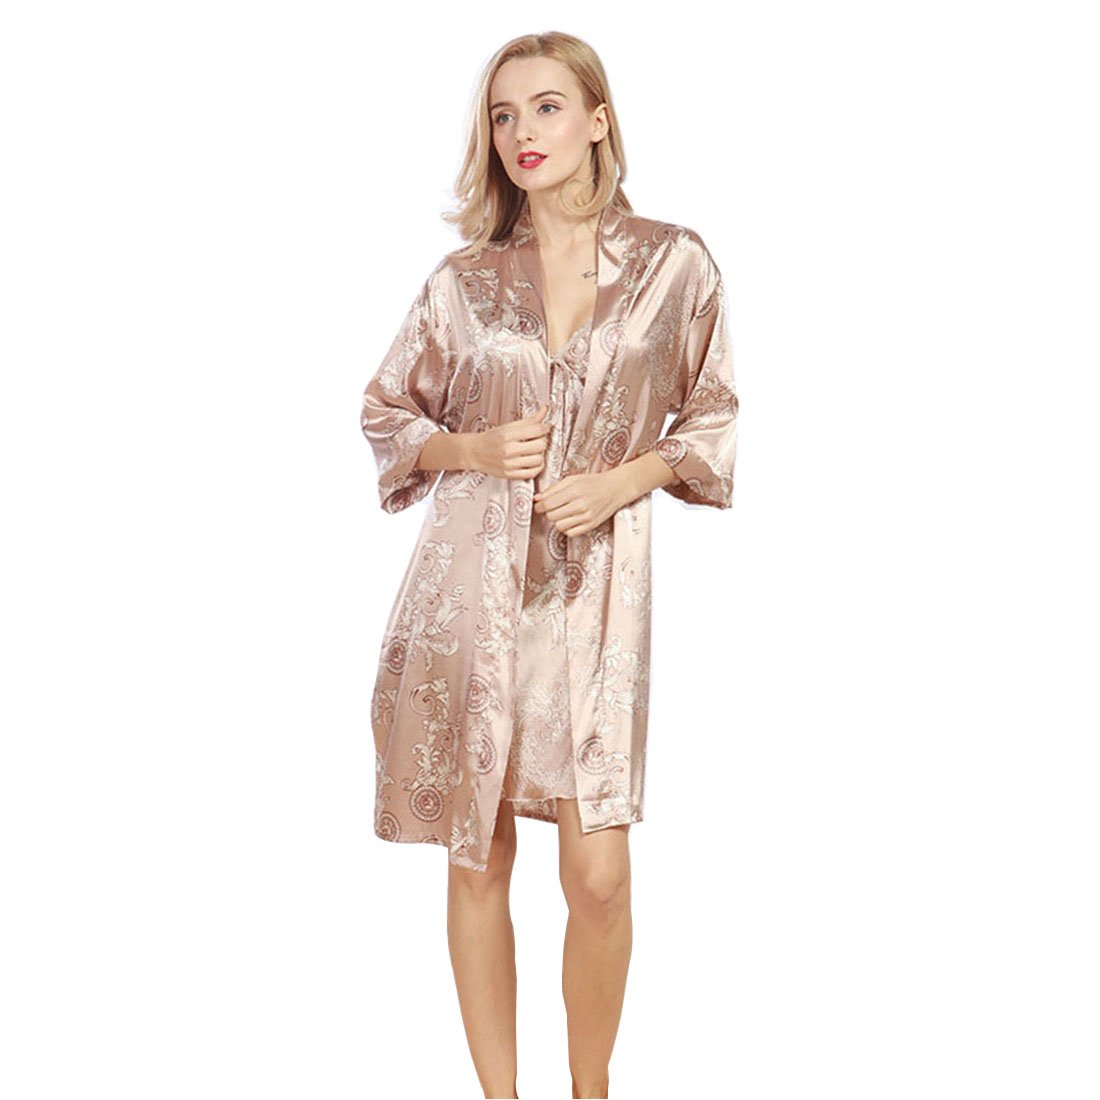 1fab45c436b1 ... Silk Luxurious Ladies Summer Bath Robe Nightdress 2 Pcs Set Female  Pajamas WP322. Wholesale Price 17.99 -  18.99 95% polyester. There is a  size table on ...